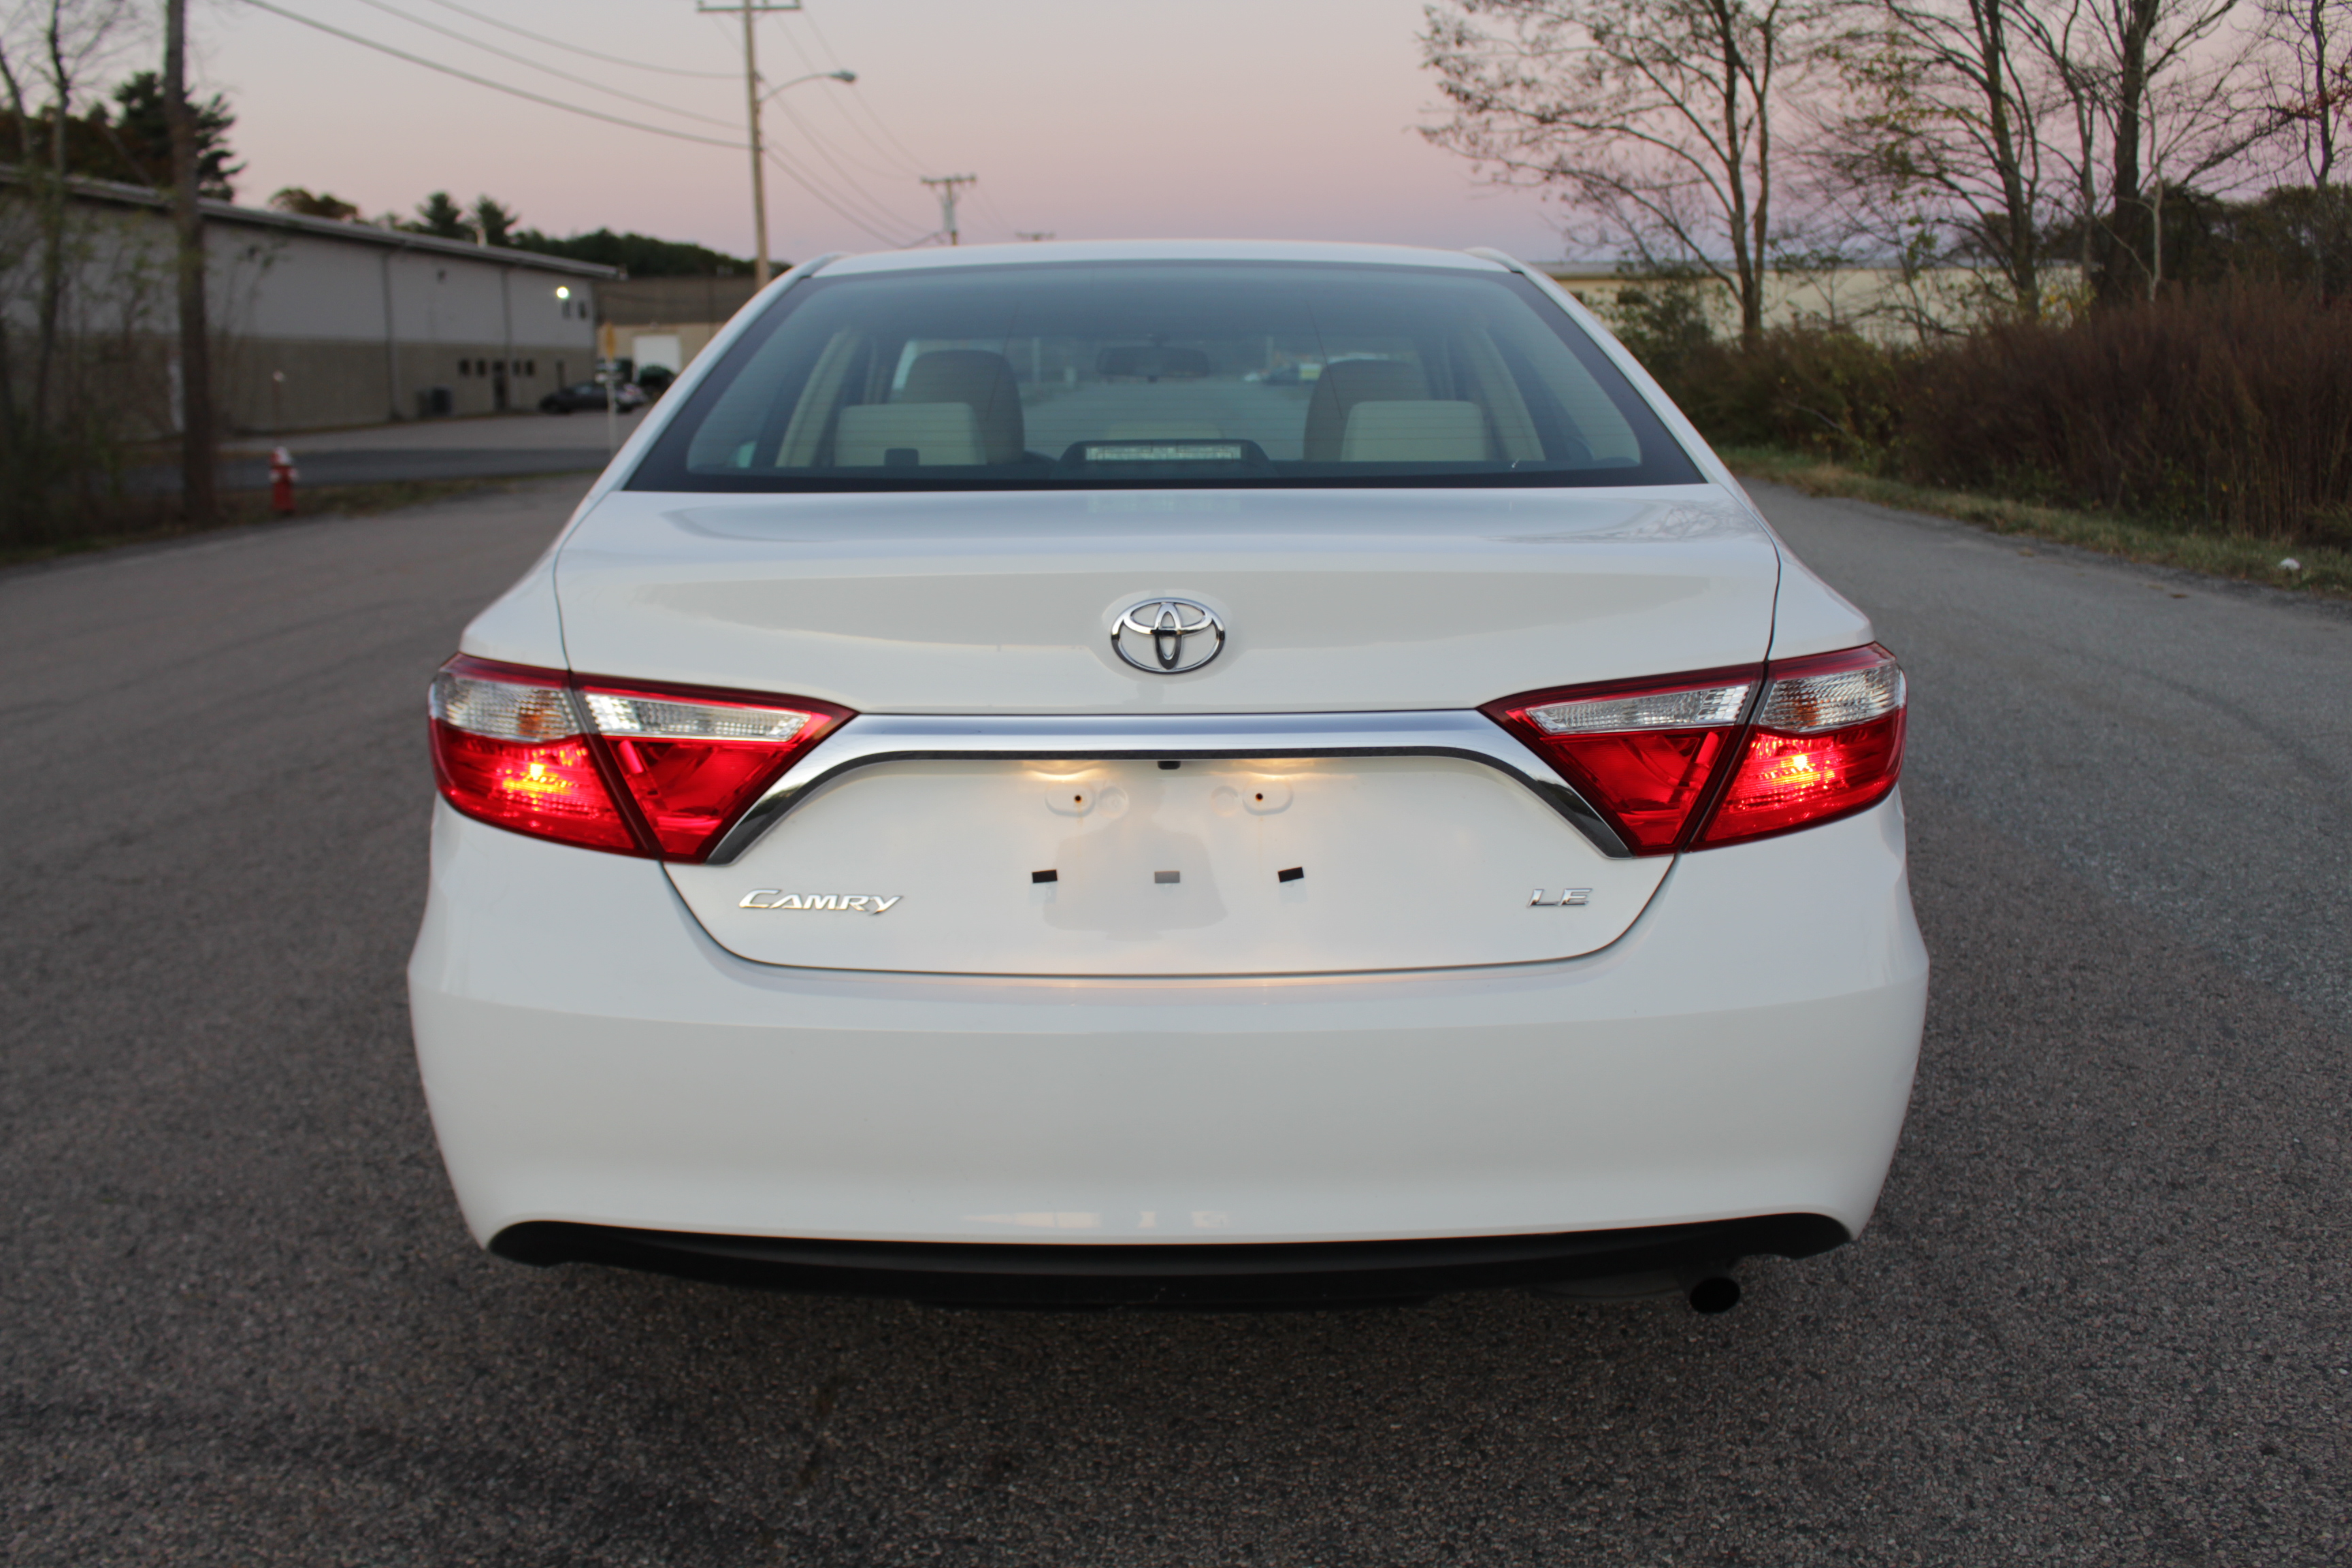 camry sedan hybrid wiki door file toyota